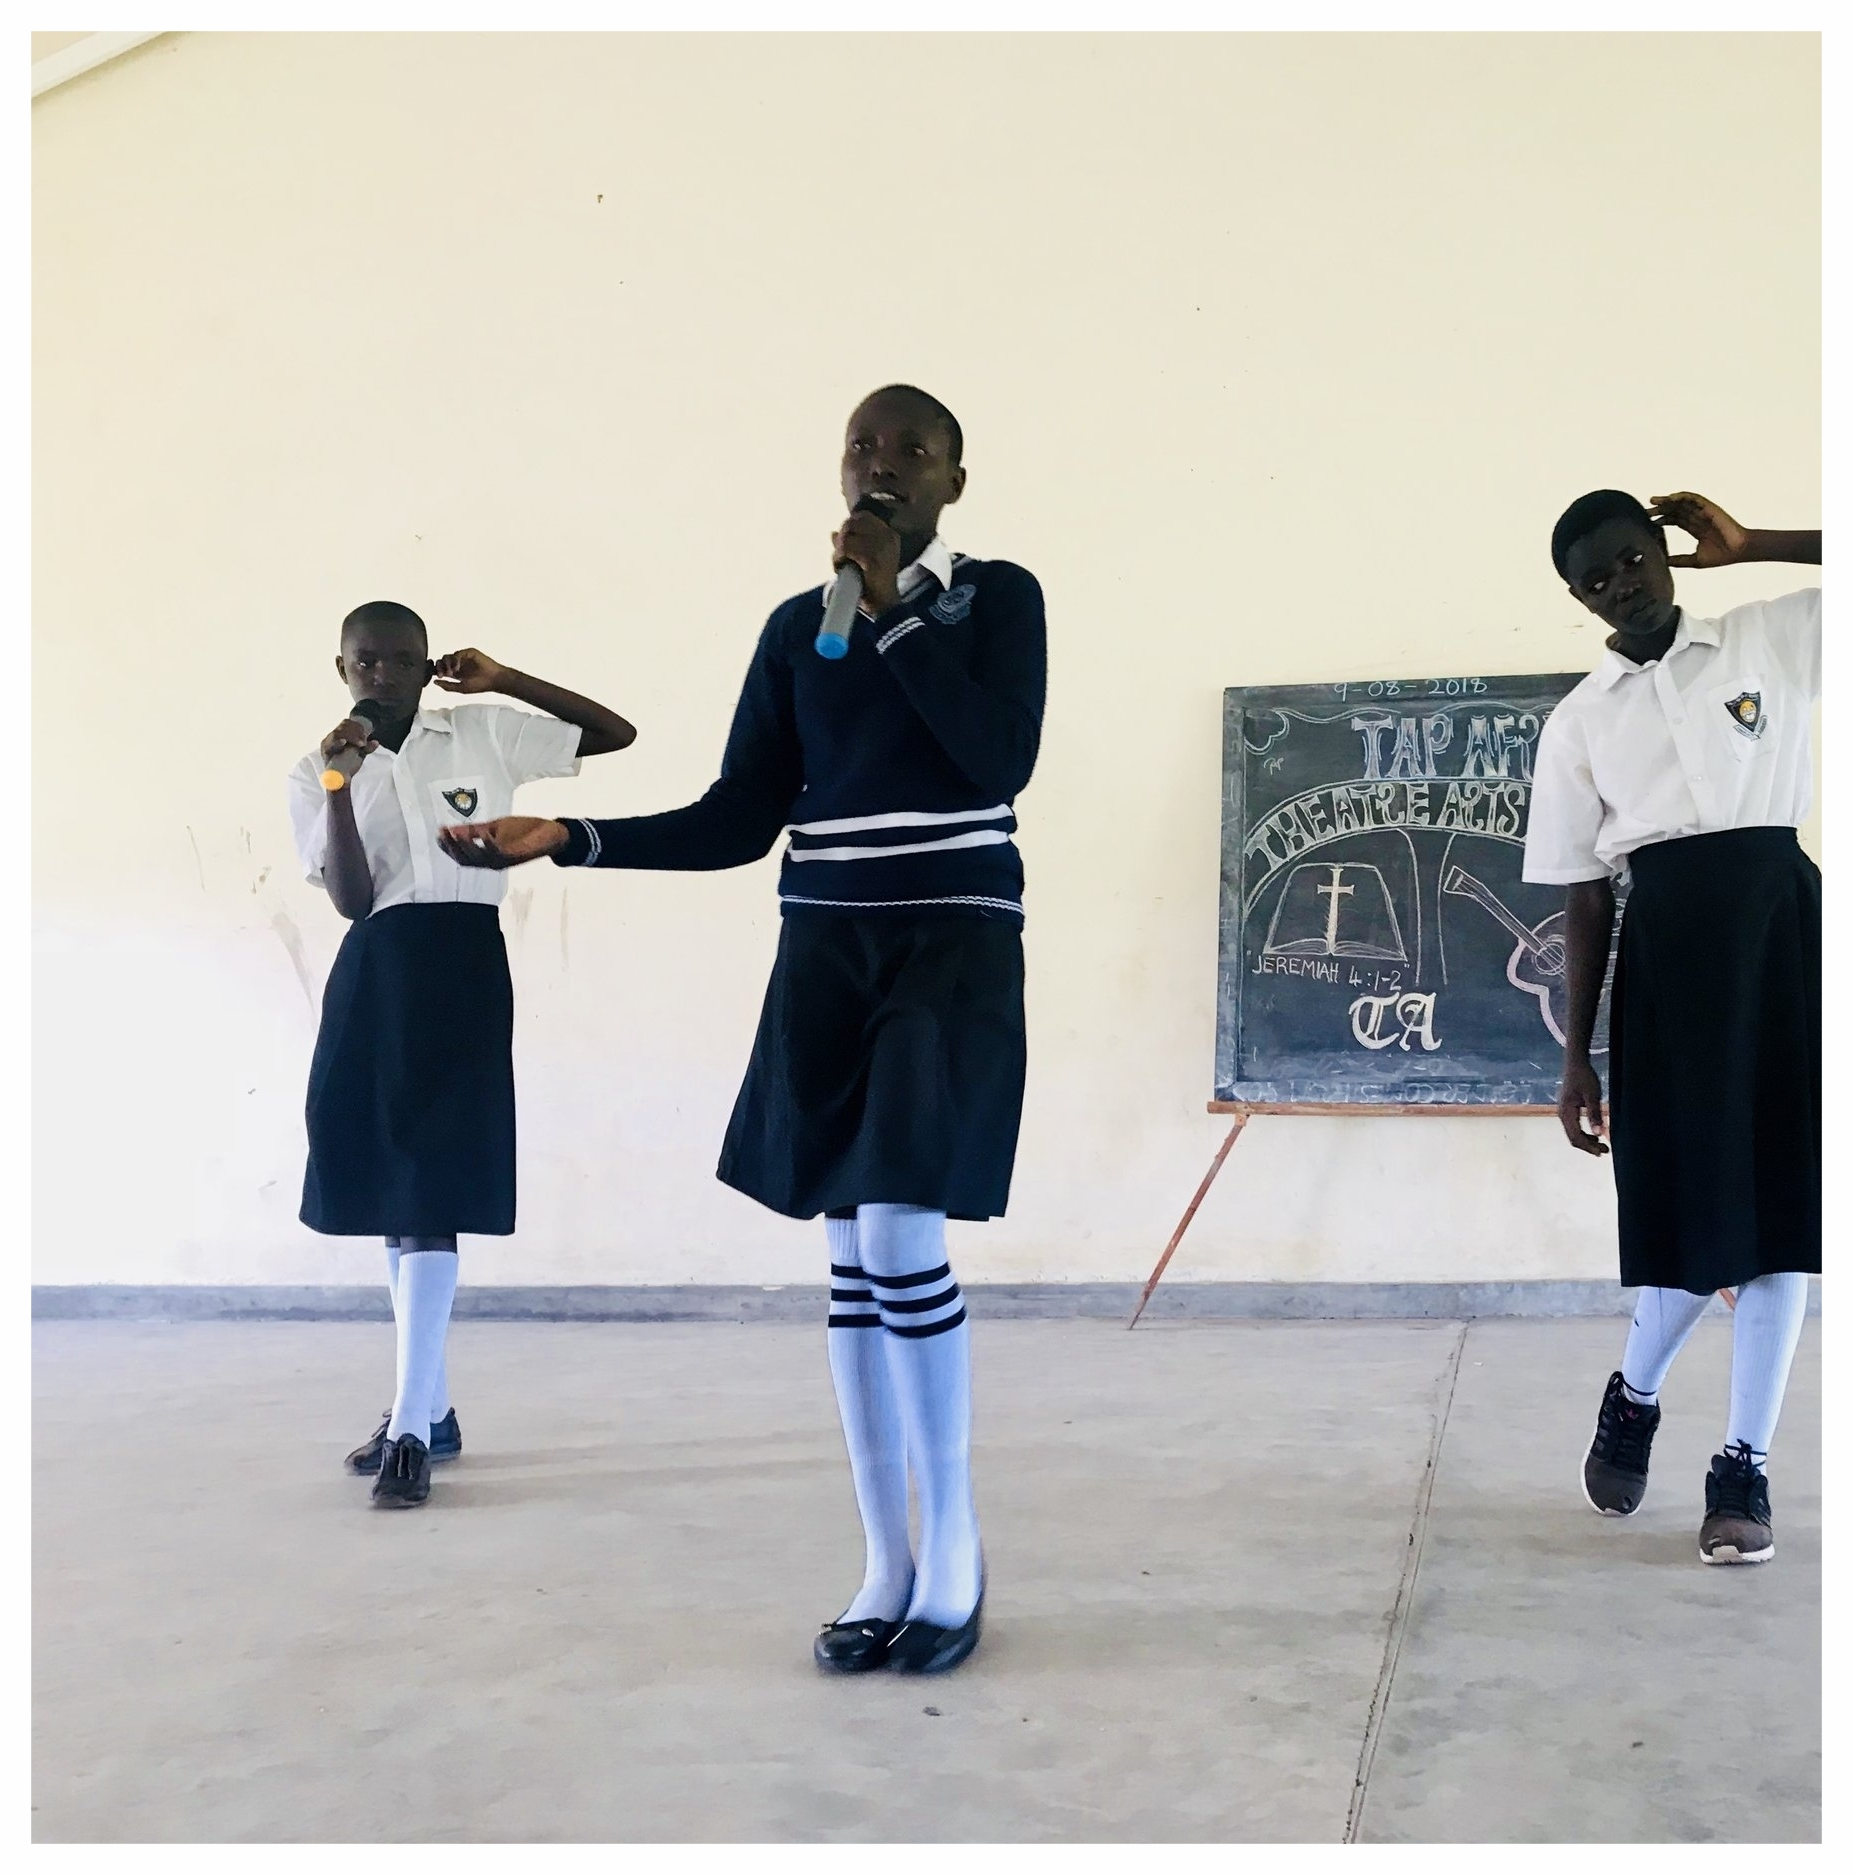 PALLISA SECONDARY SCHOOL PROGRAM - The Theater Arts Project (TAP) has been working with the Pallisa Secondary School since February 2018. Classes take place once a week in the evening. Classes are taught by Simon Lubale. For more information, please feel free to contact us.